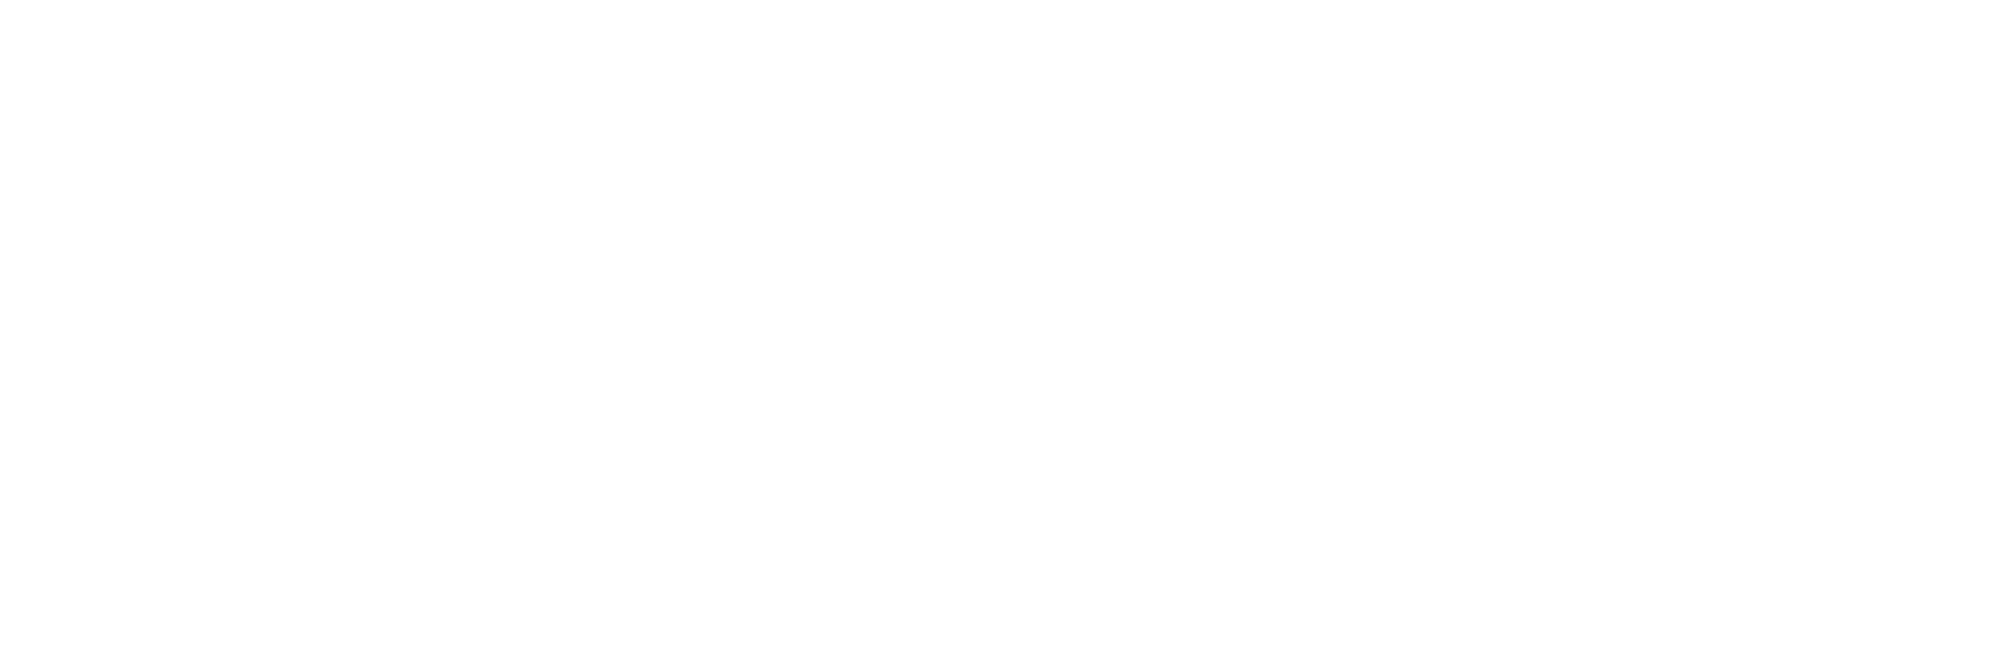 Bakersfield Ivy Legacy Foundation, Inc.-logo-white.png